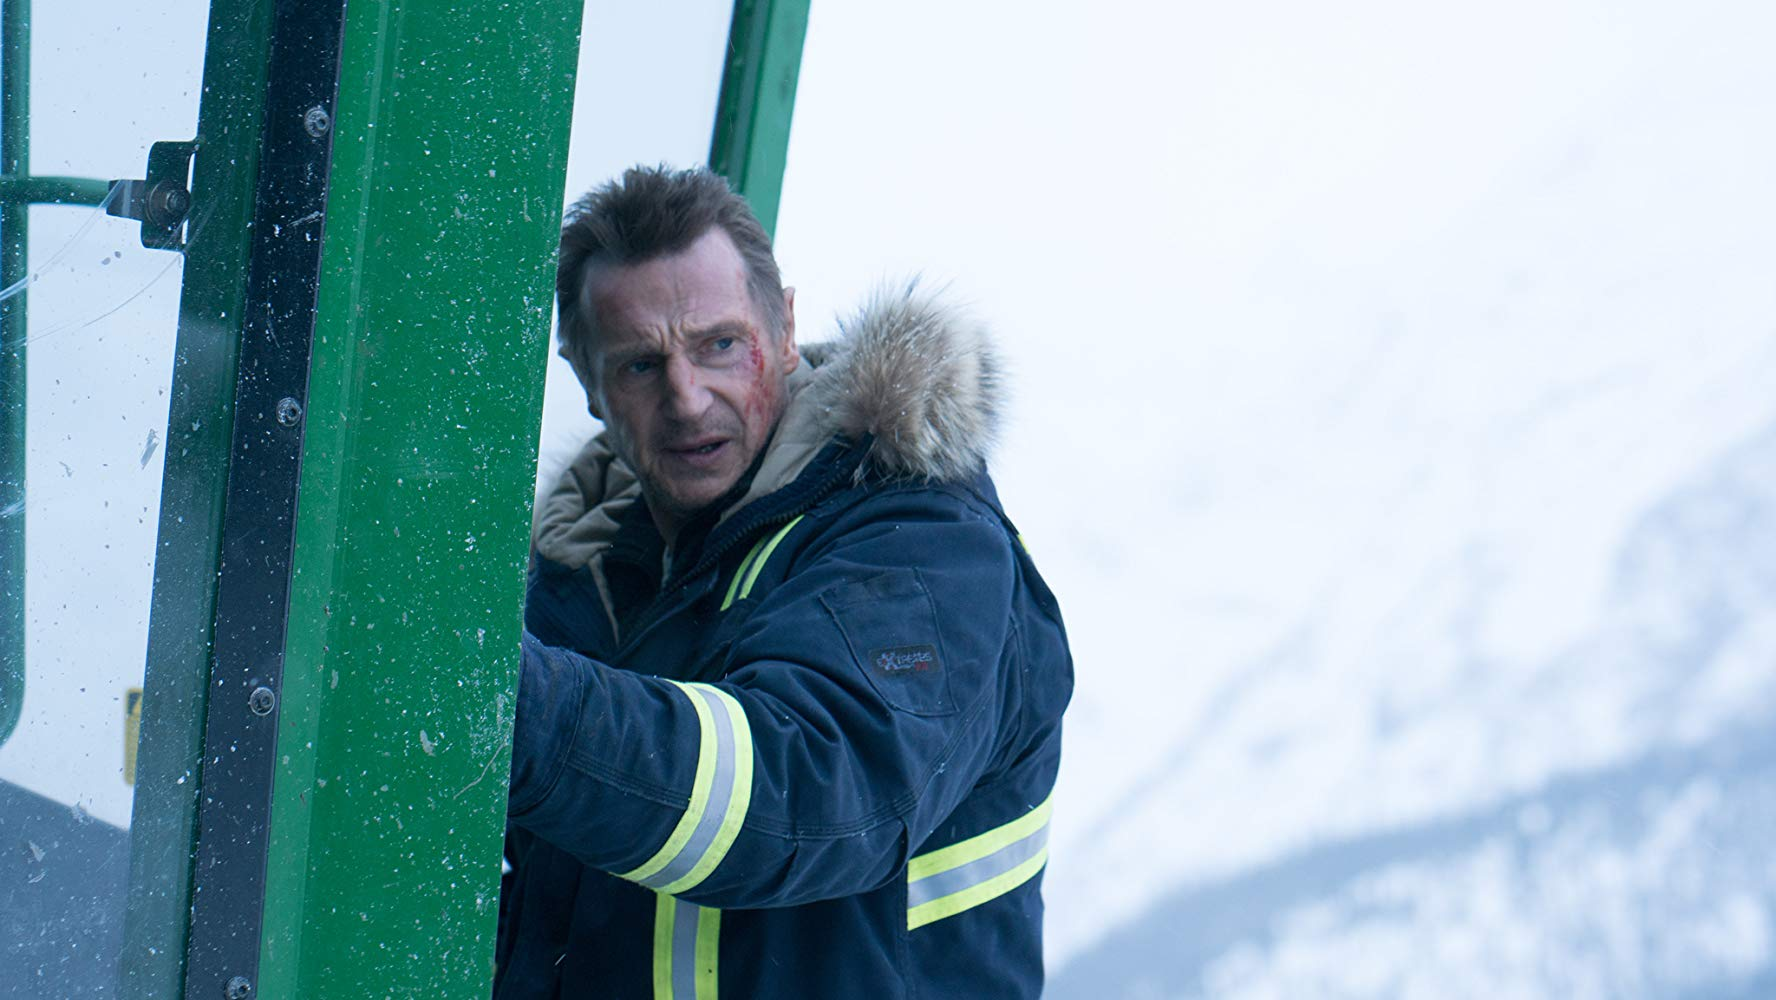 [News] COLD PURSUIT Arrives on 4K Ultra HD Combo Pack May 14